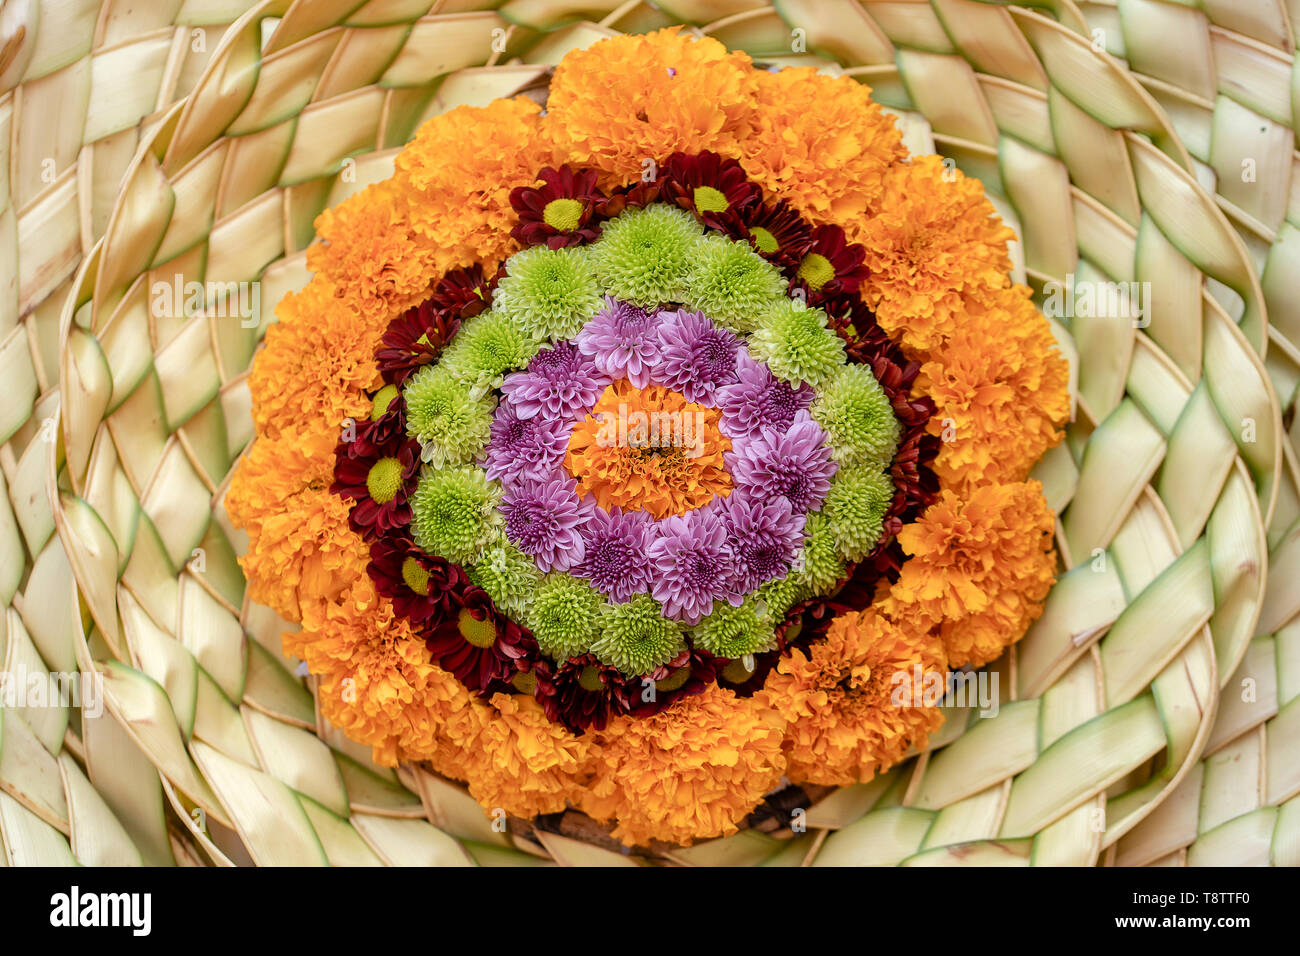 A wreath of straw and flowers for religious ceremonies in Ubud, island Bali, Indonesia , close up - Stock Image